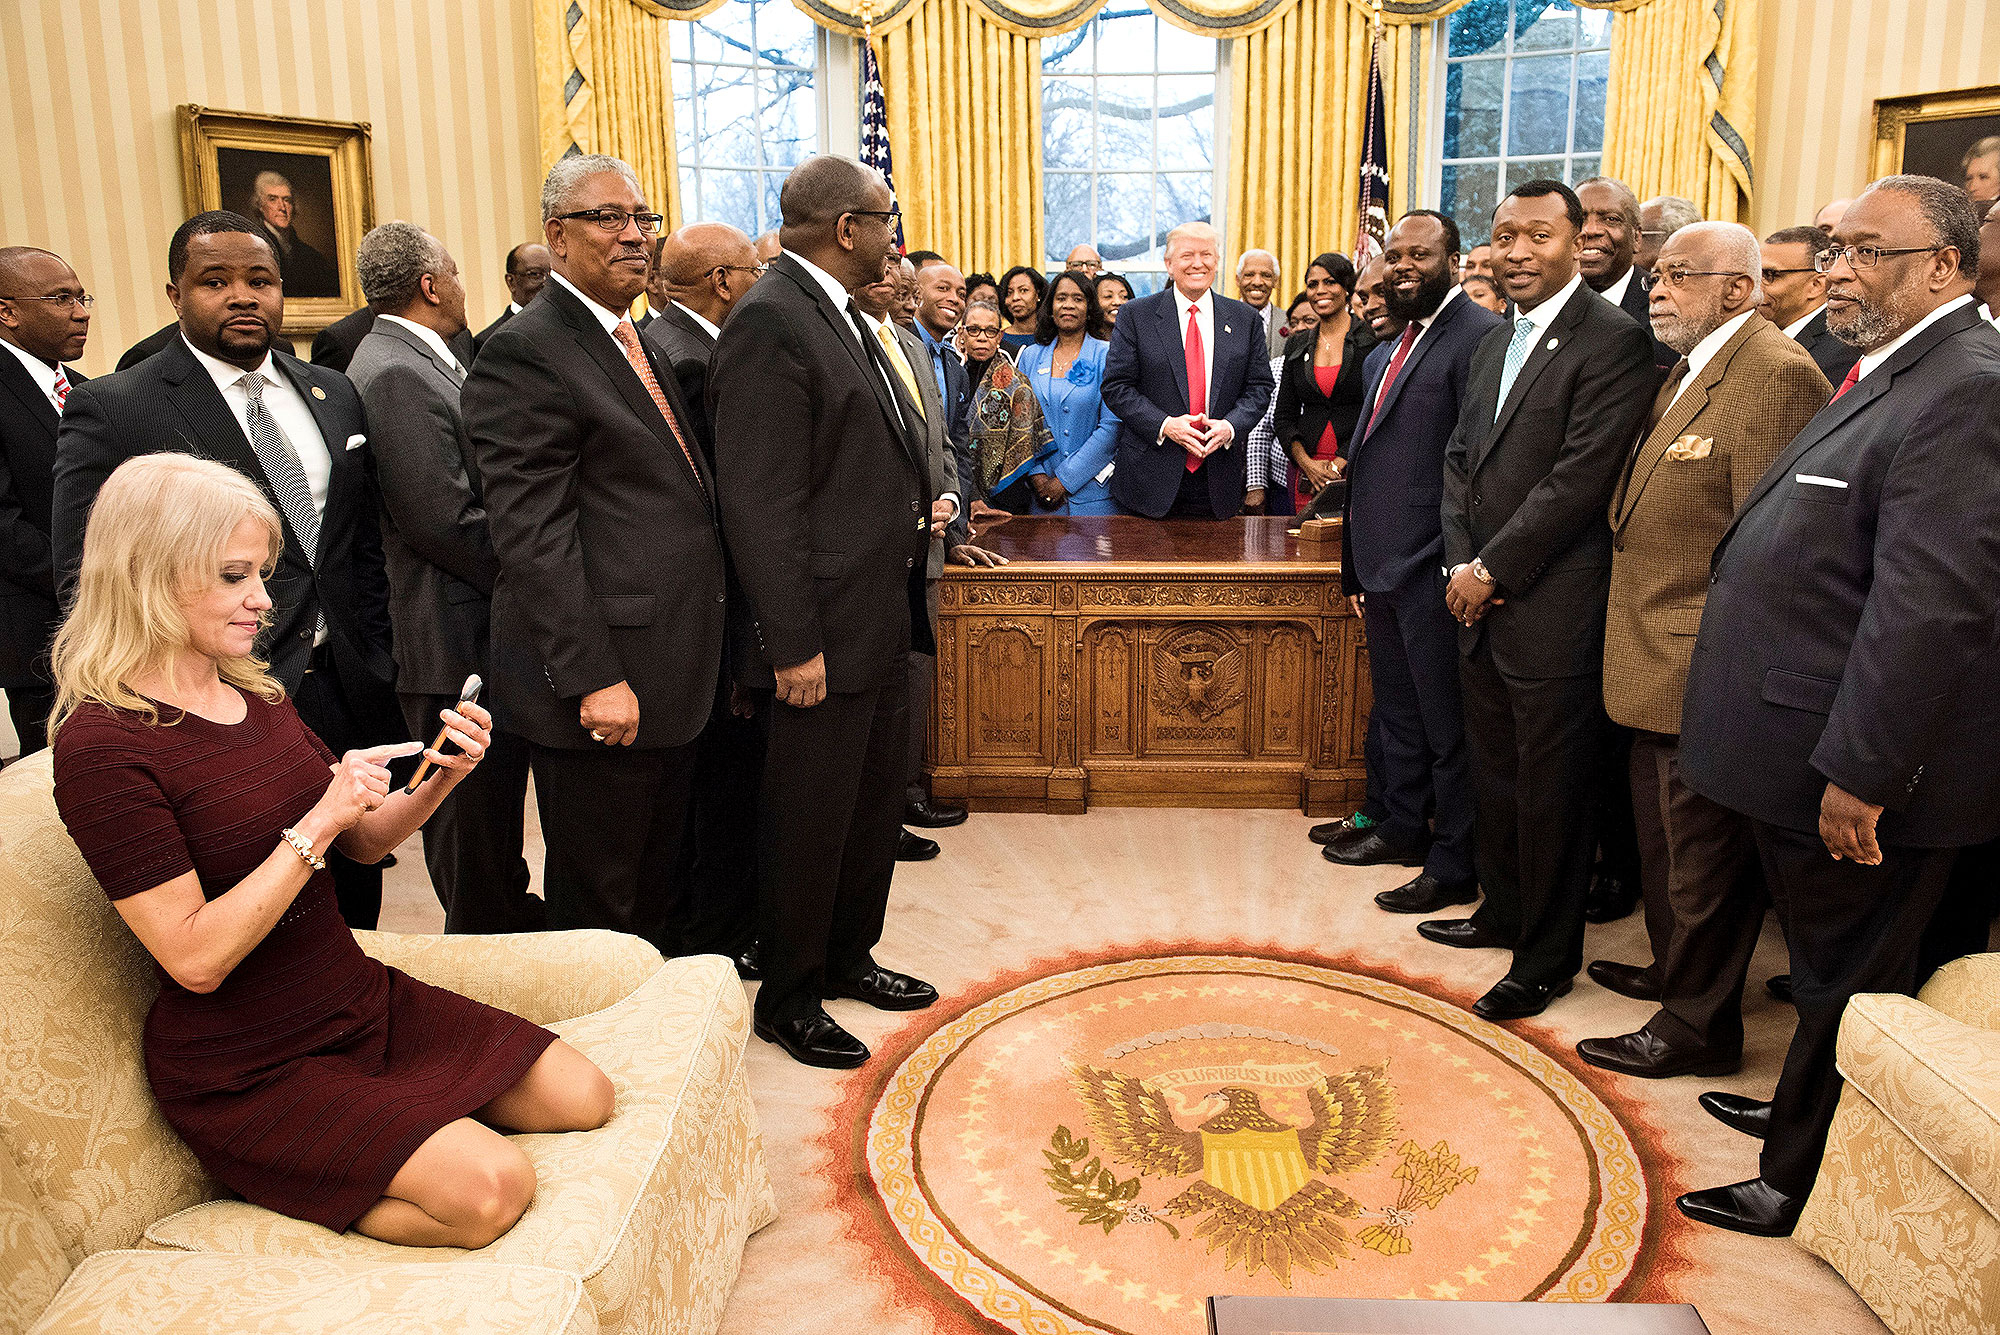 Counselor to the President Kellyanne Conway (L) checks her phone after taking a photo as US President Donald Trump and leaders of historically black universities and colleges pose for a group photo in the Oval Office of the White House before a meeting with US Vice President Mike Pence February 27, 2017 in Washington, DC.